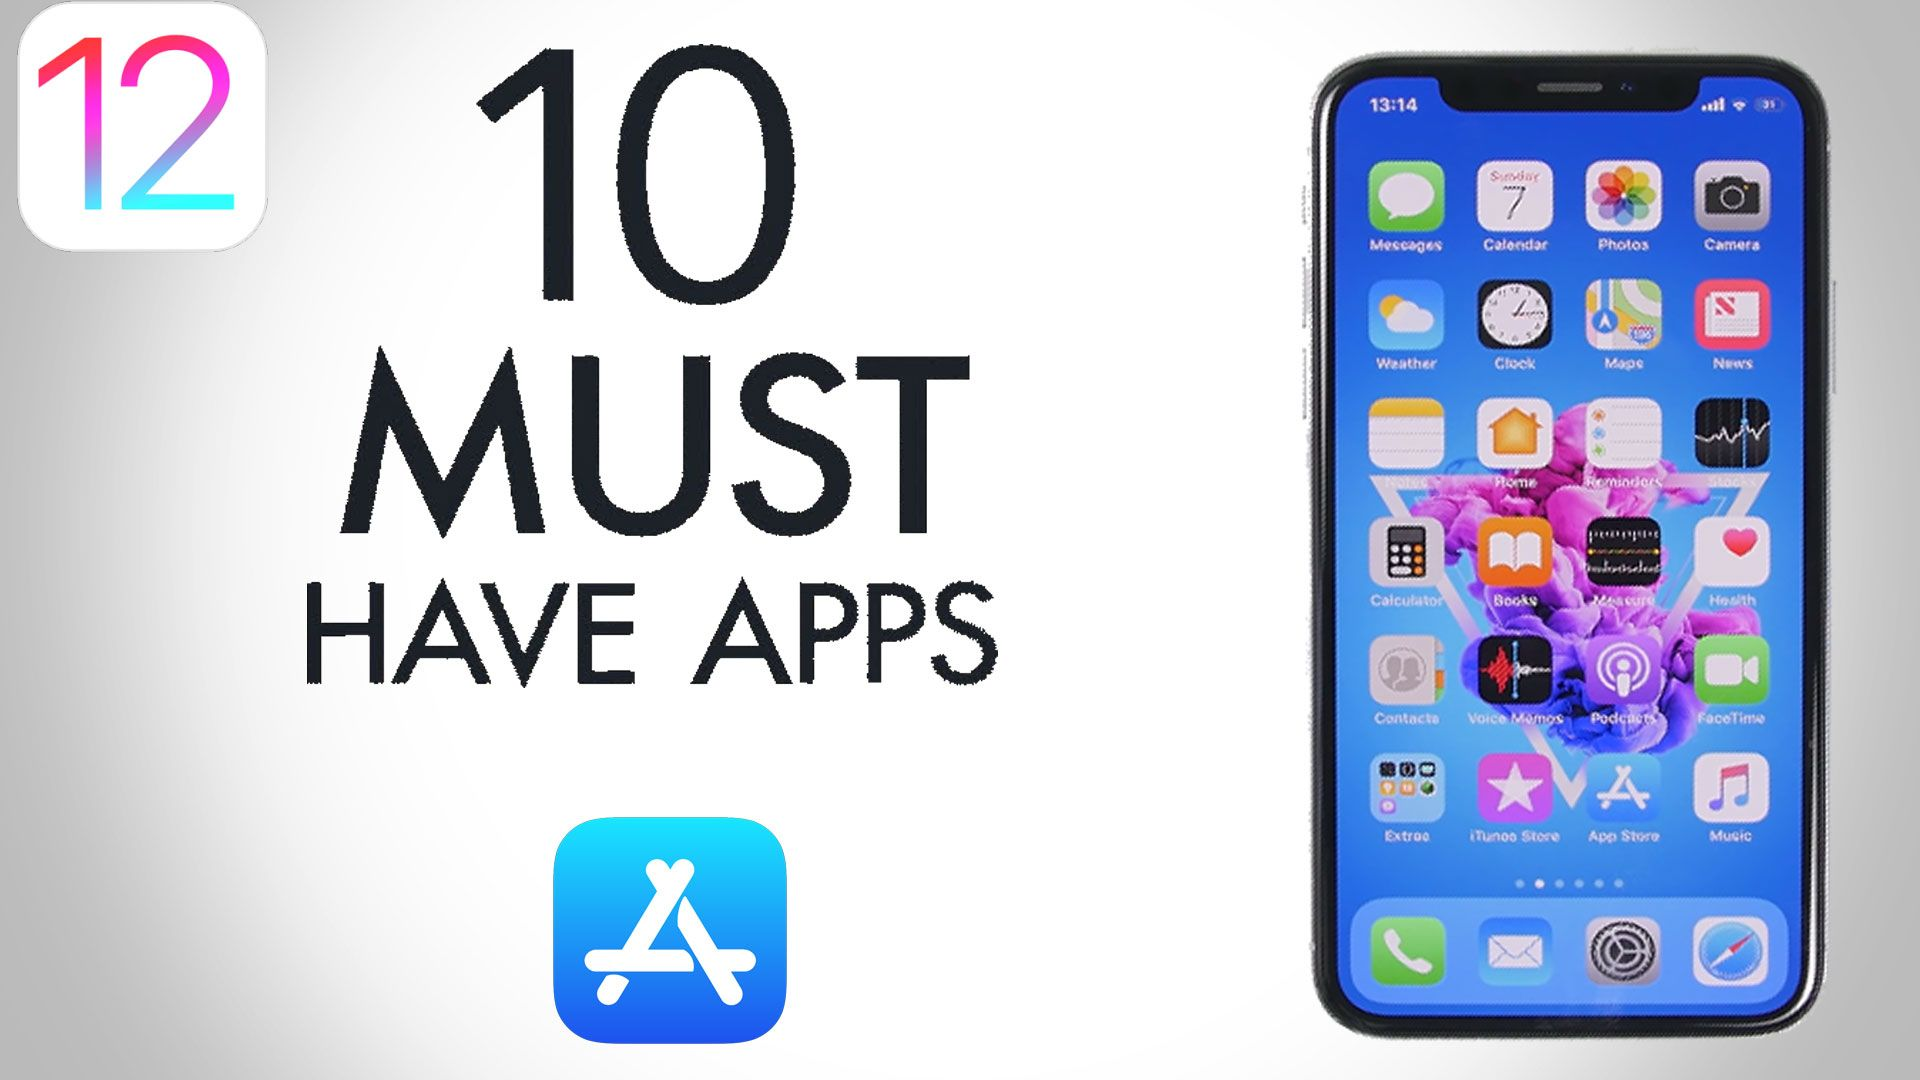 Top 10 must have apps for iPhone – Compatible with iOS 12